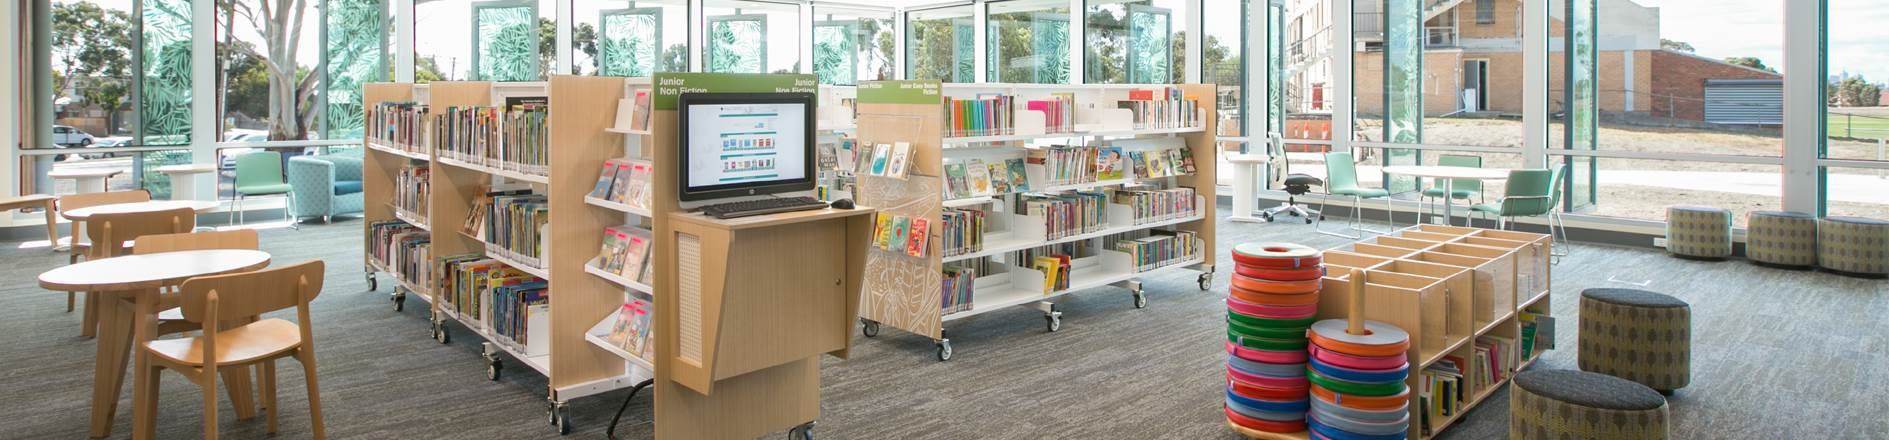 Interior of Braybrook Library.